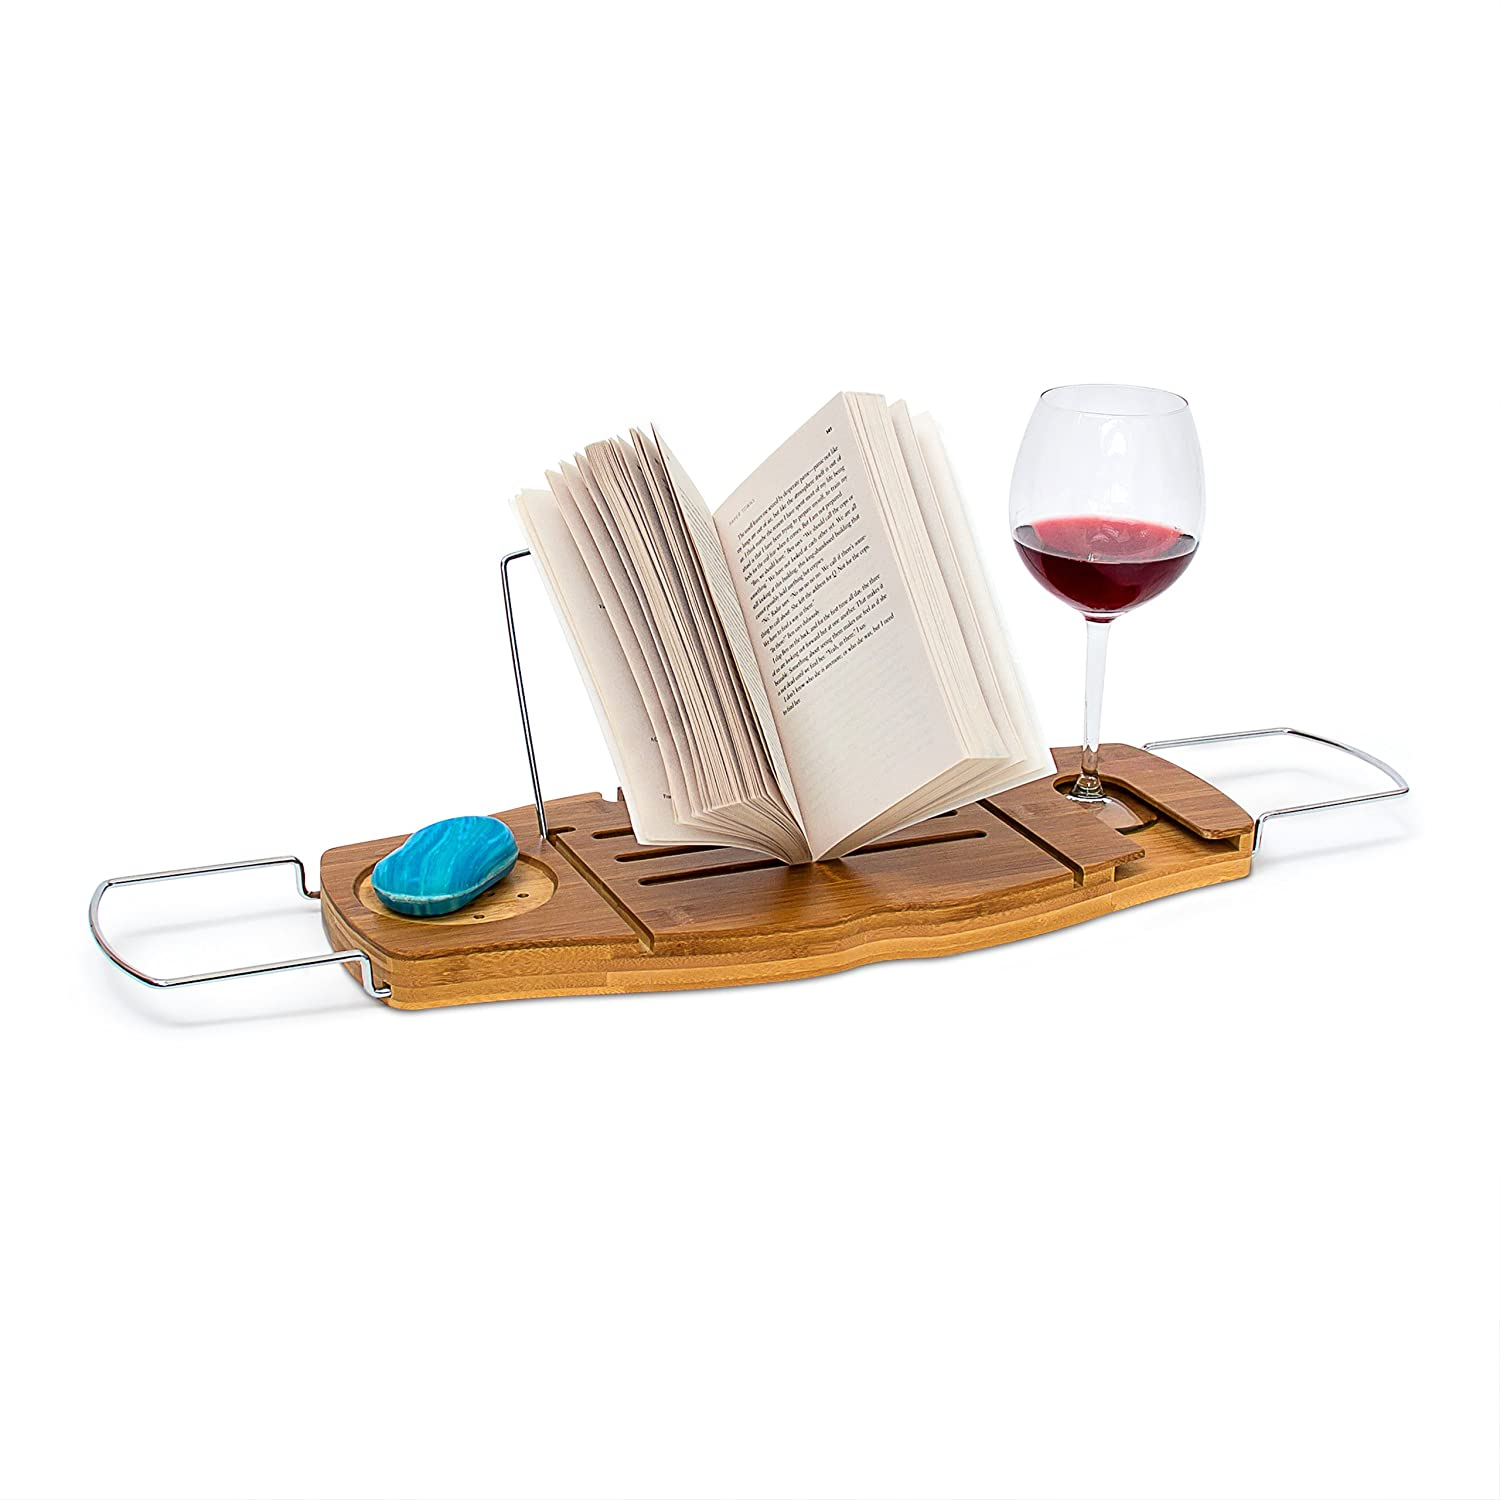 Relaxdays Bamboo Bathtub Caddy, Bath Tray With Book Stand, 17.5 x 70 x 21.5 cm, with Wine Glass Holder, Extendible, Natural Brown 10019195